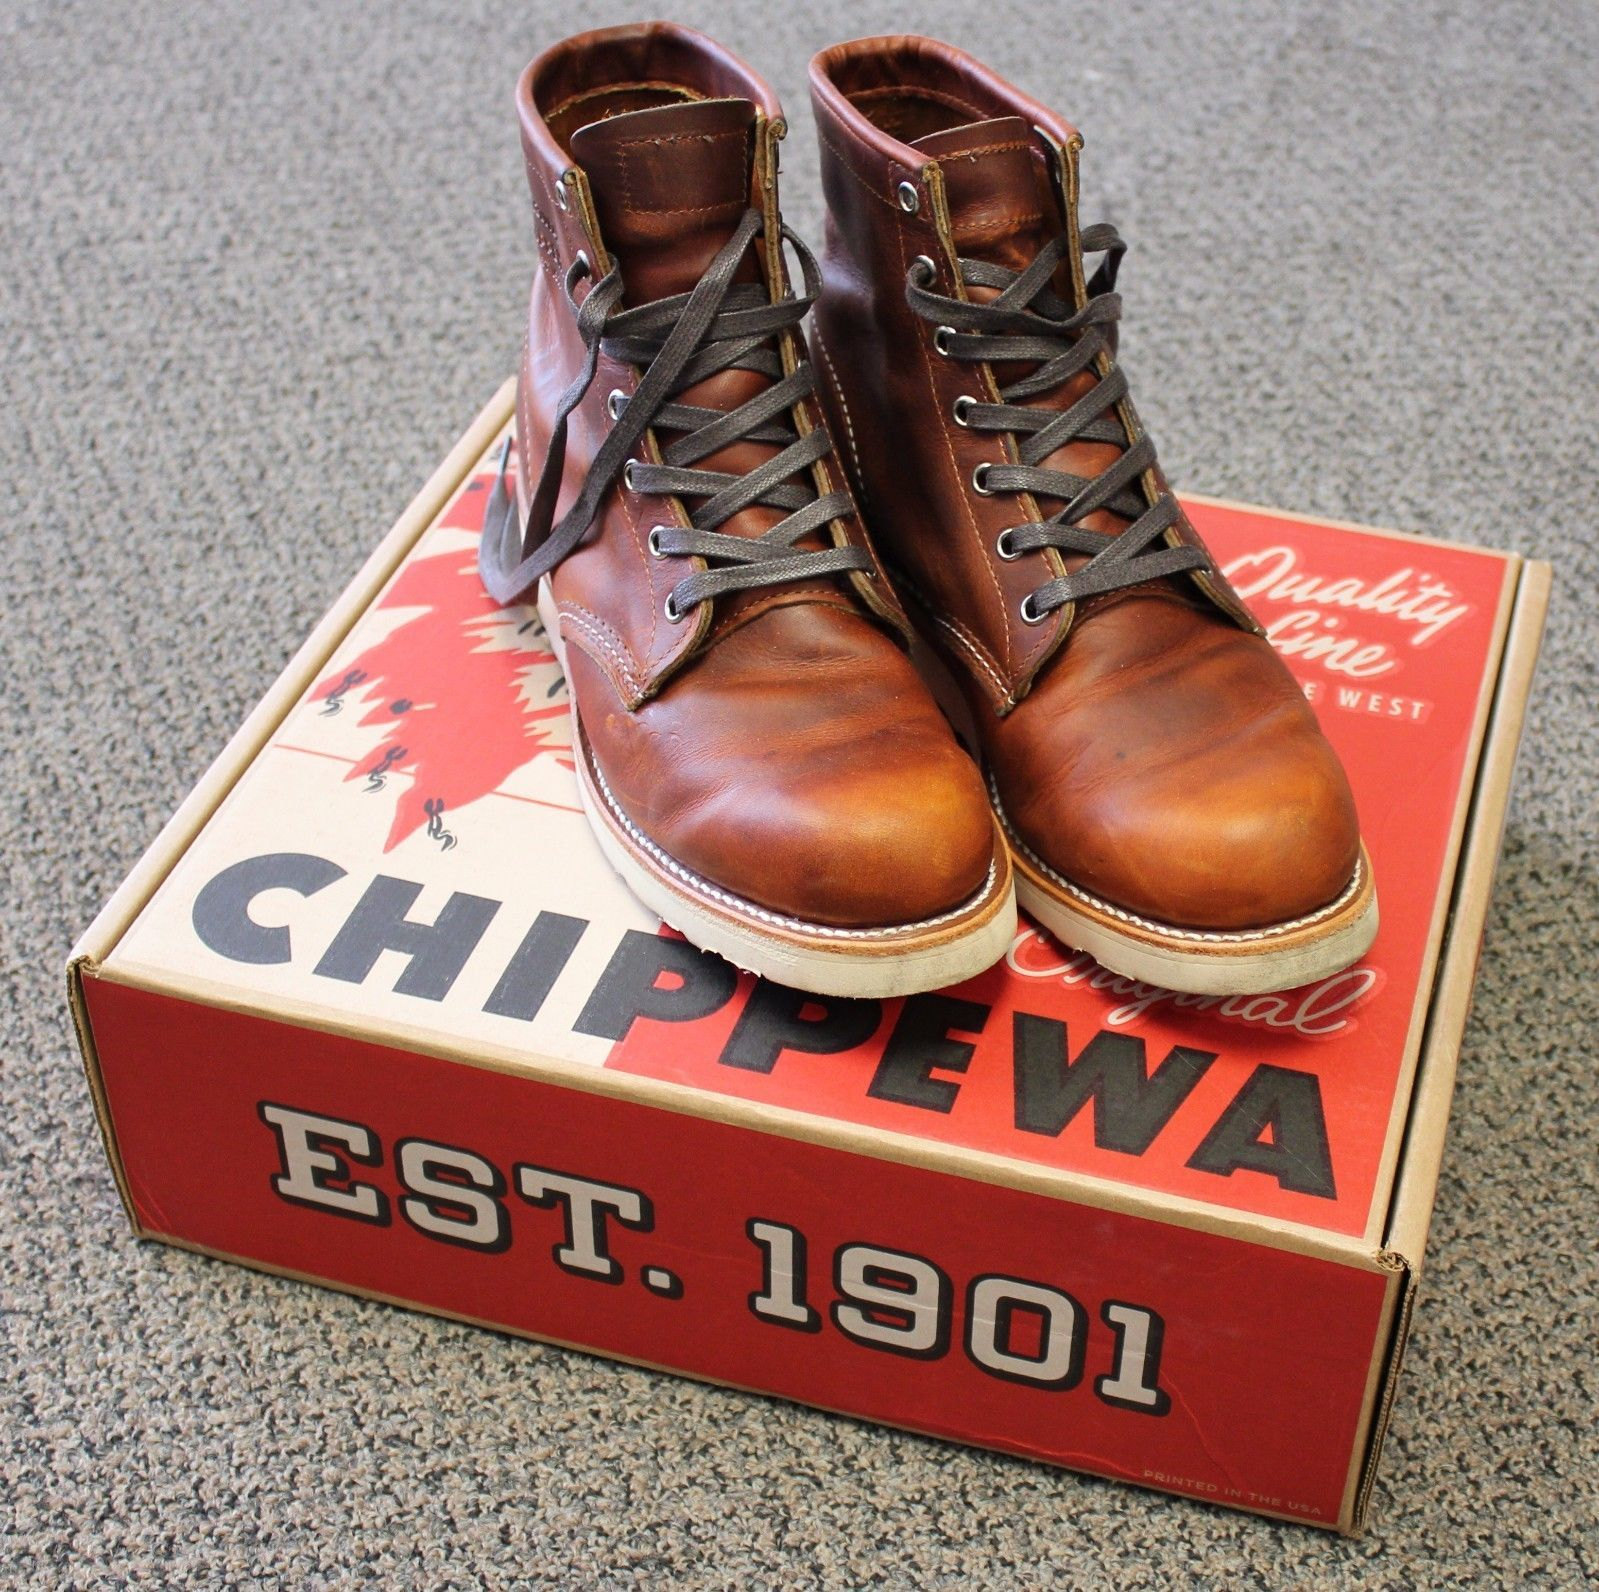 Chippewa 1901m17 Tan Renegade 6 Leather Boots Men S 9 Mens Leather Boots Leather Boots Boots